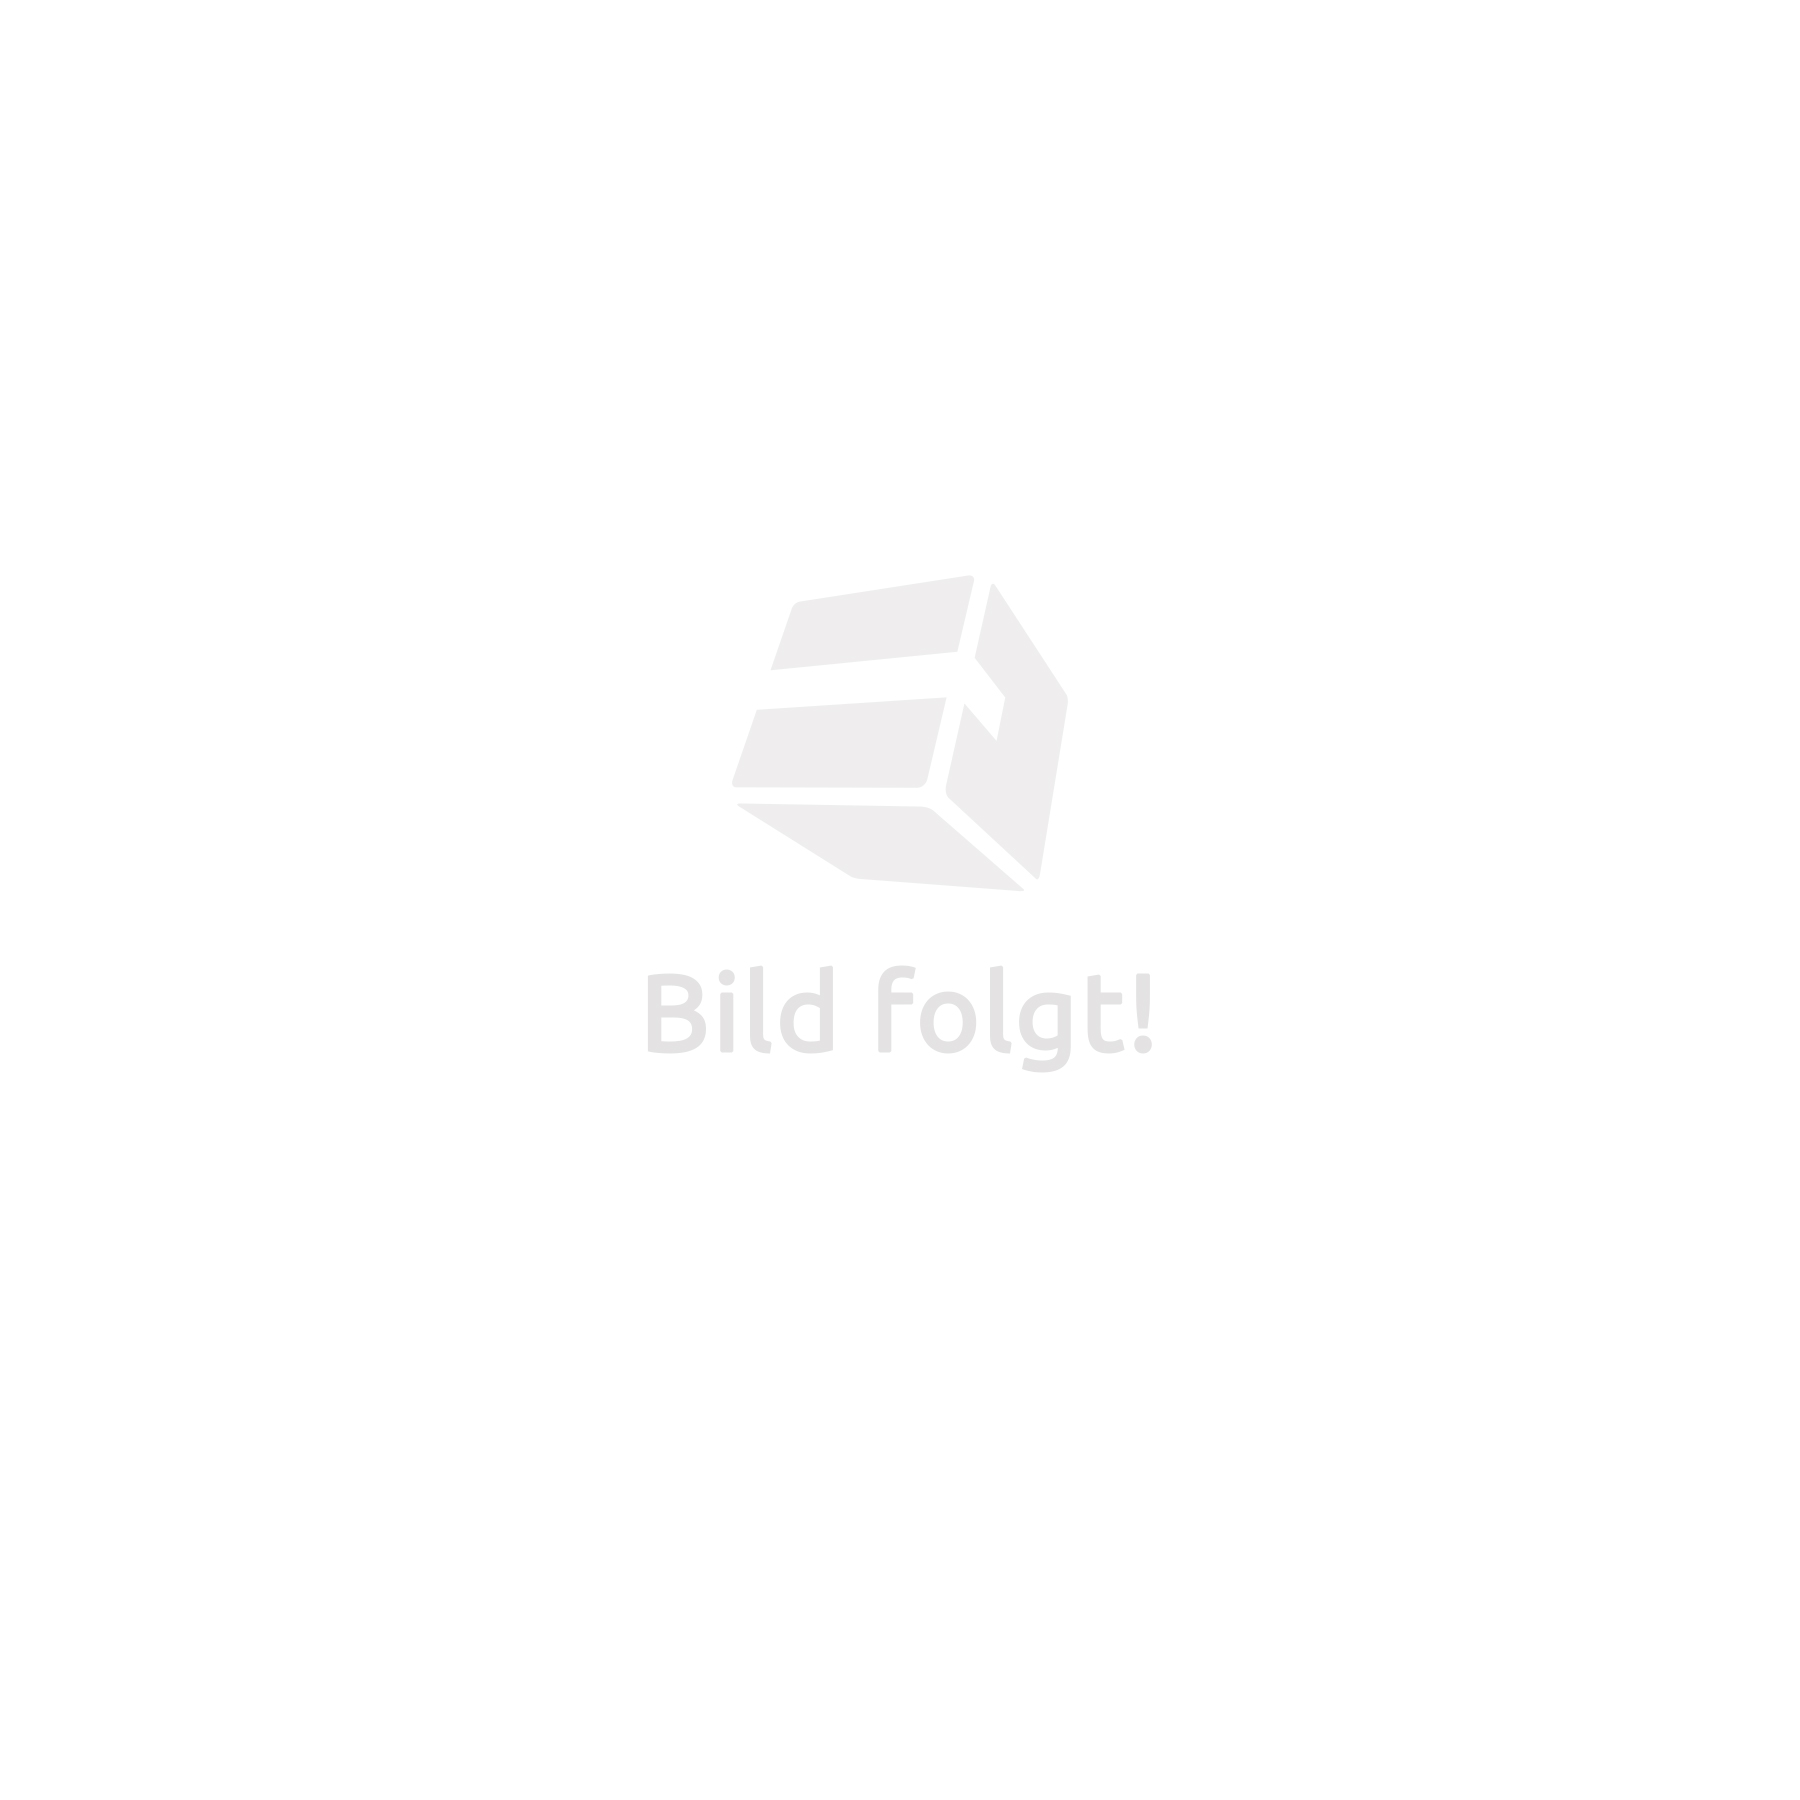 Engine hoist support bar partially assembled, up to 500kg